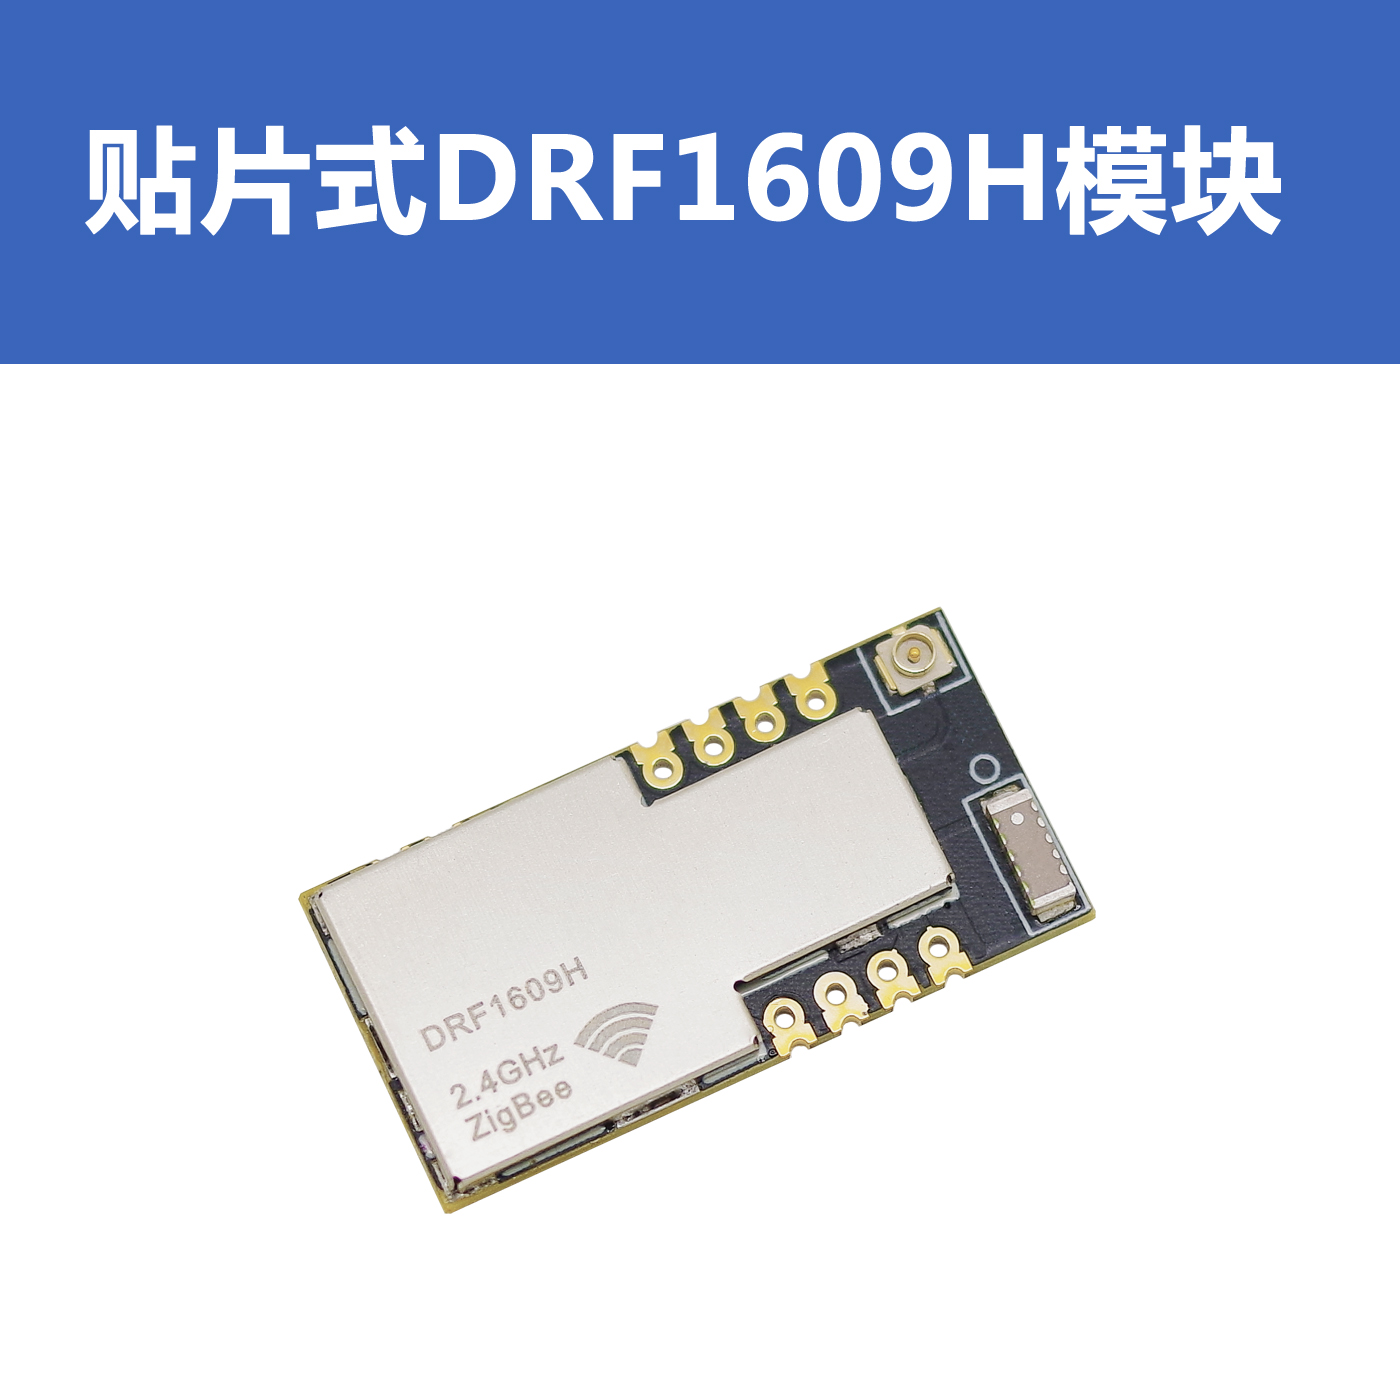 UART serial port to ZigBee wireless module cc2630 chip DRF1609H with PA 1.6km usb serial rs485 rs232 zigbee cc2530 pa remote wireless module